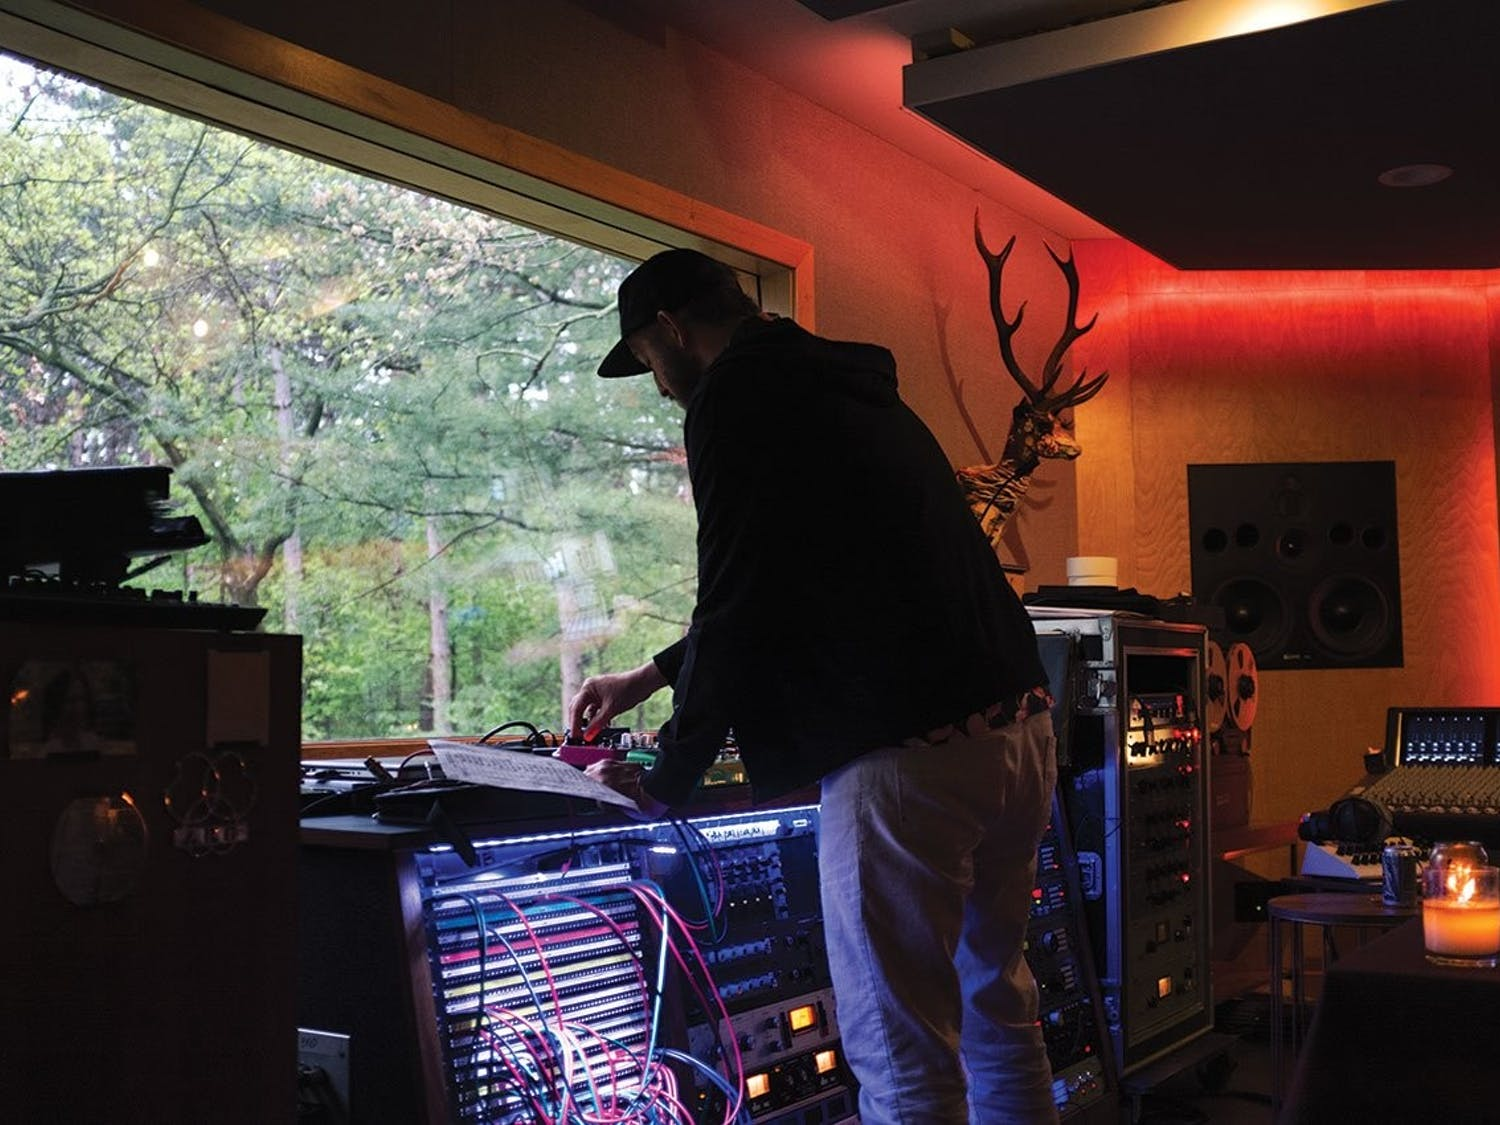 Justin Vernon returns to his cabin in Eau Claire, Wisconsin, where he finds creative sererenity, fueling his musical pursuit.